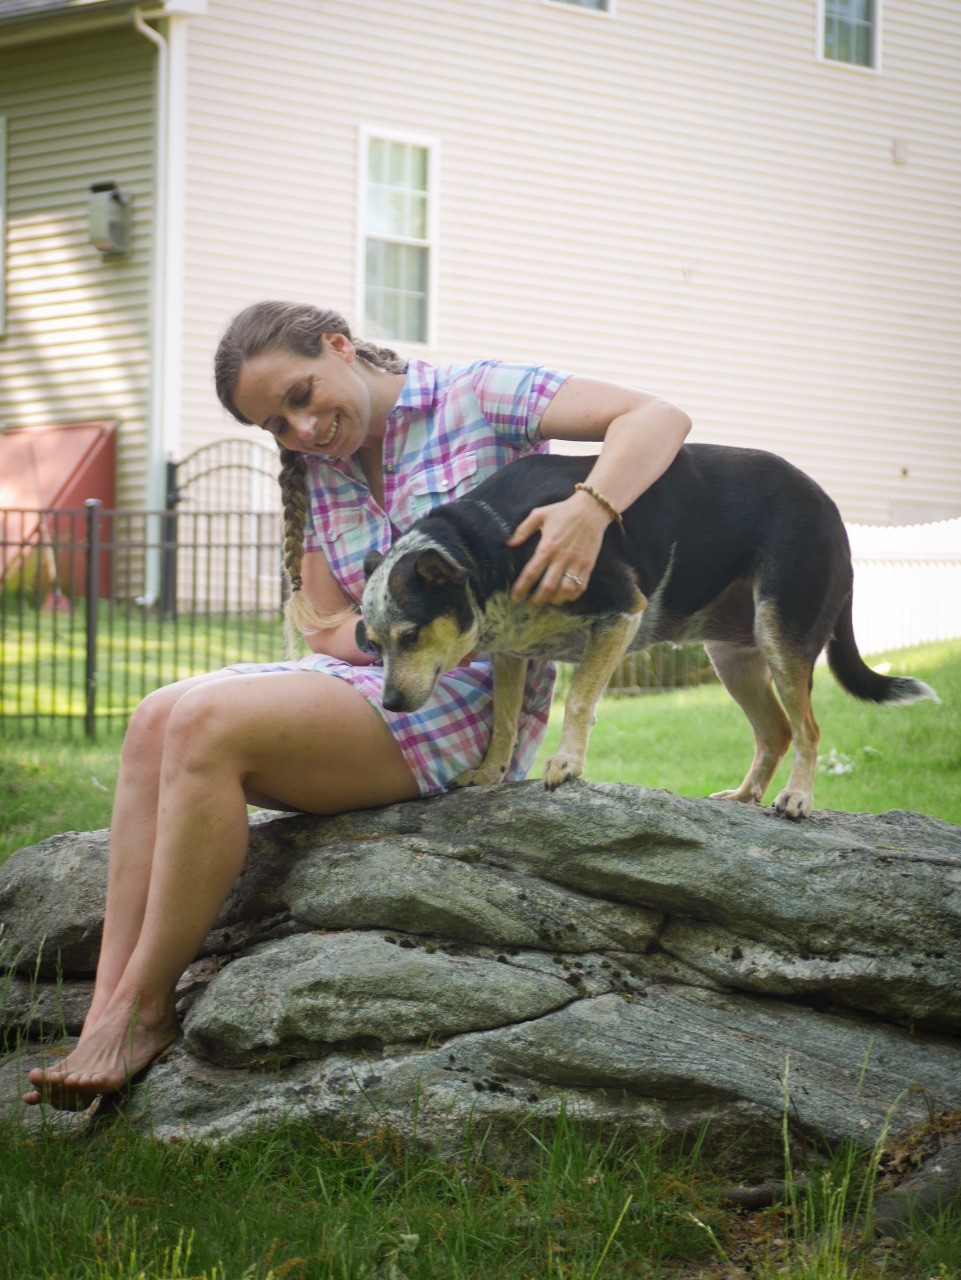 Nancy Mello The Animal Communicator Who Works Hand in Hand with Veterinarians